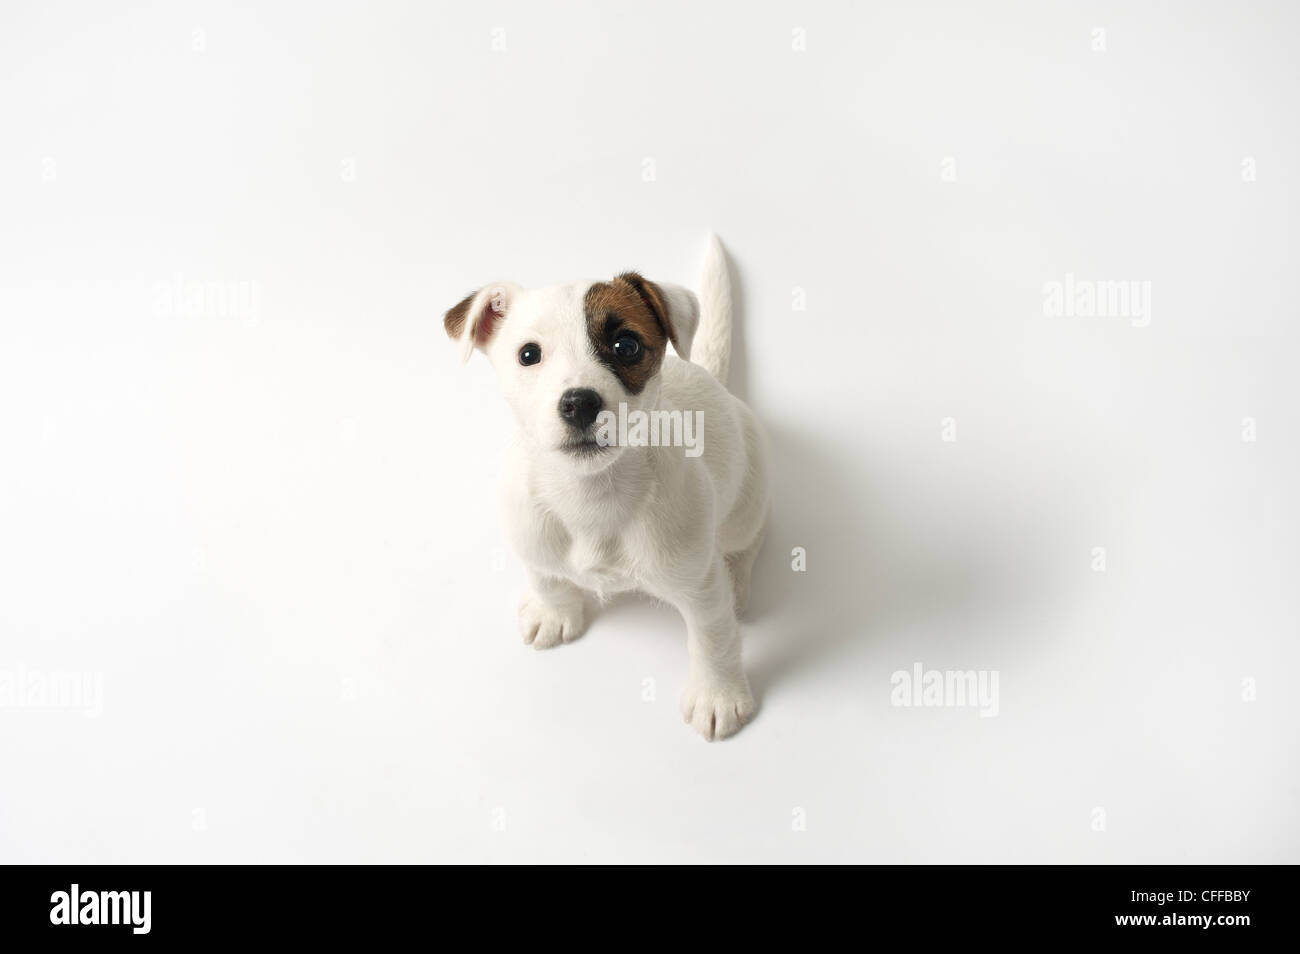 Jack Russell puppy from above on white background - Stock Image